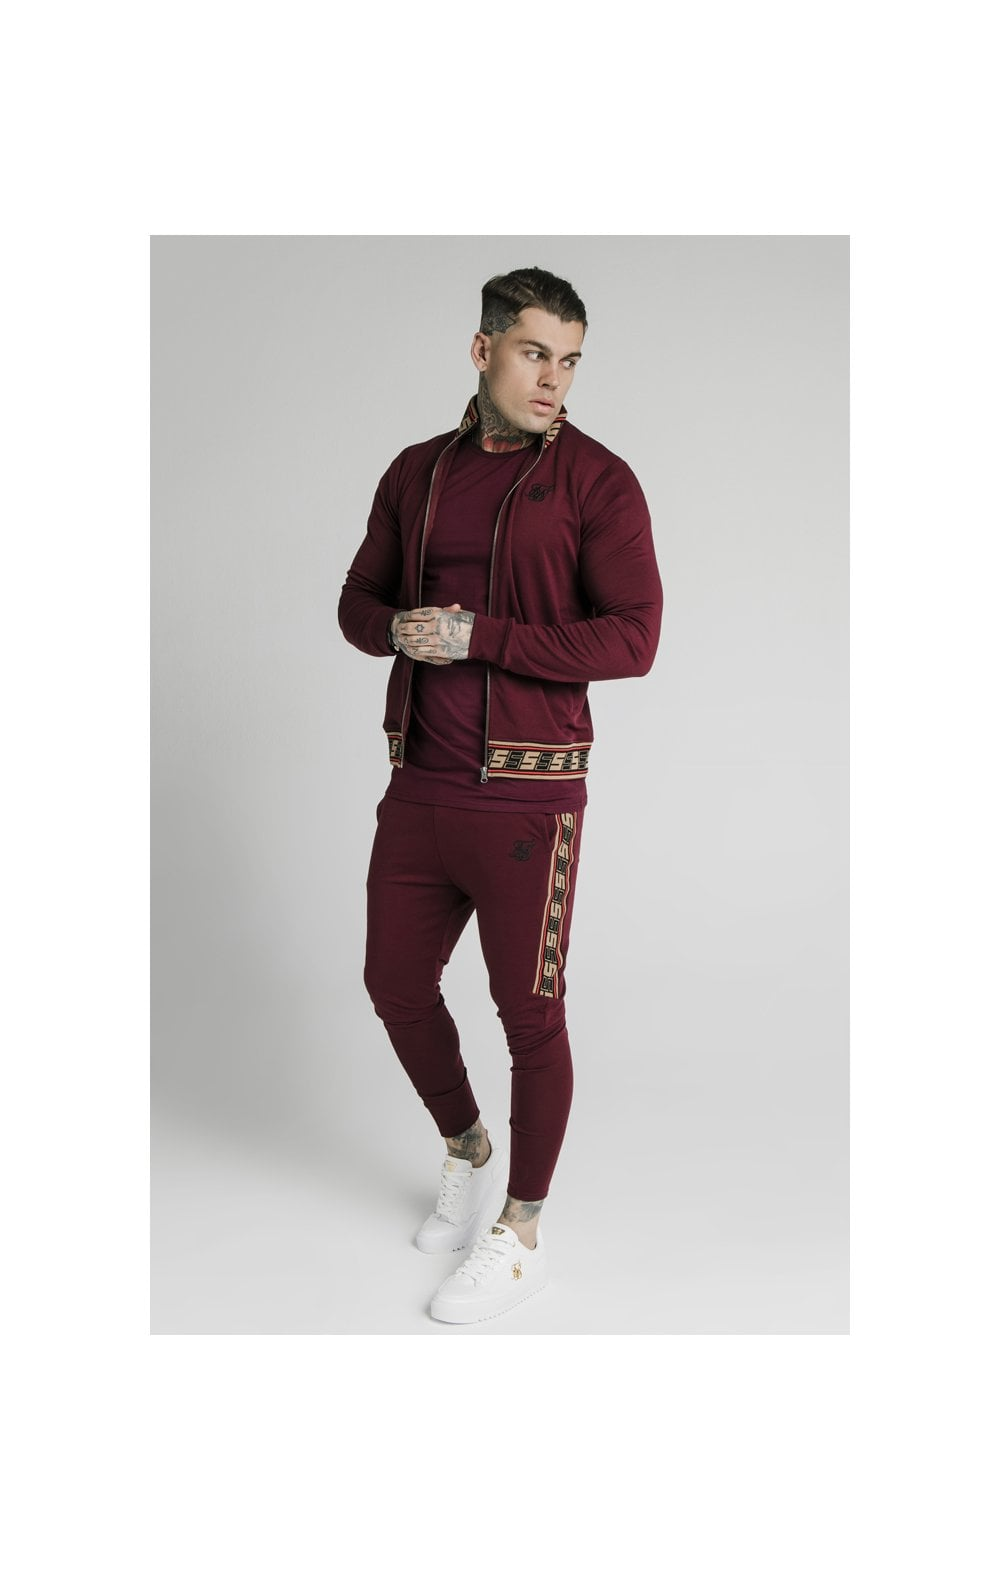 Load image into Gallery viewer, SikSilk Jacquard Retro Zip Through - Burgundy (4)